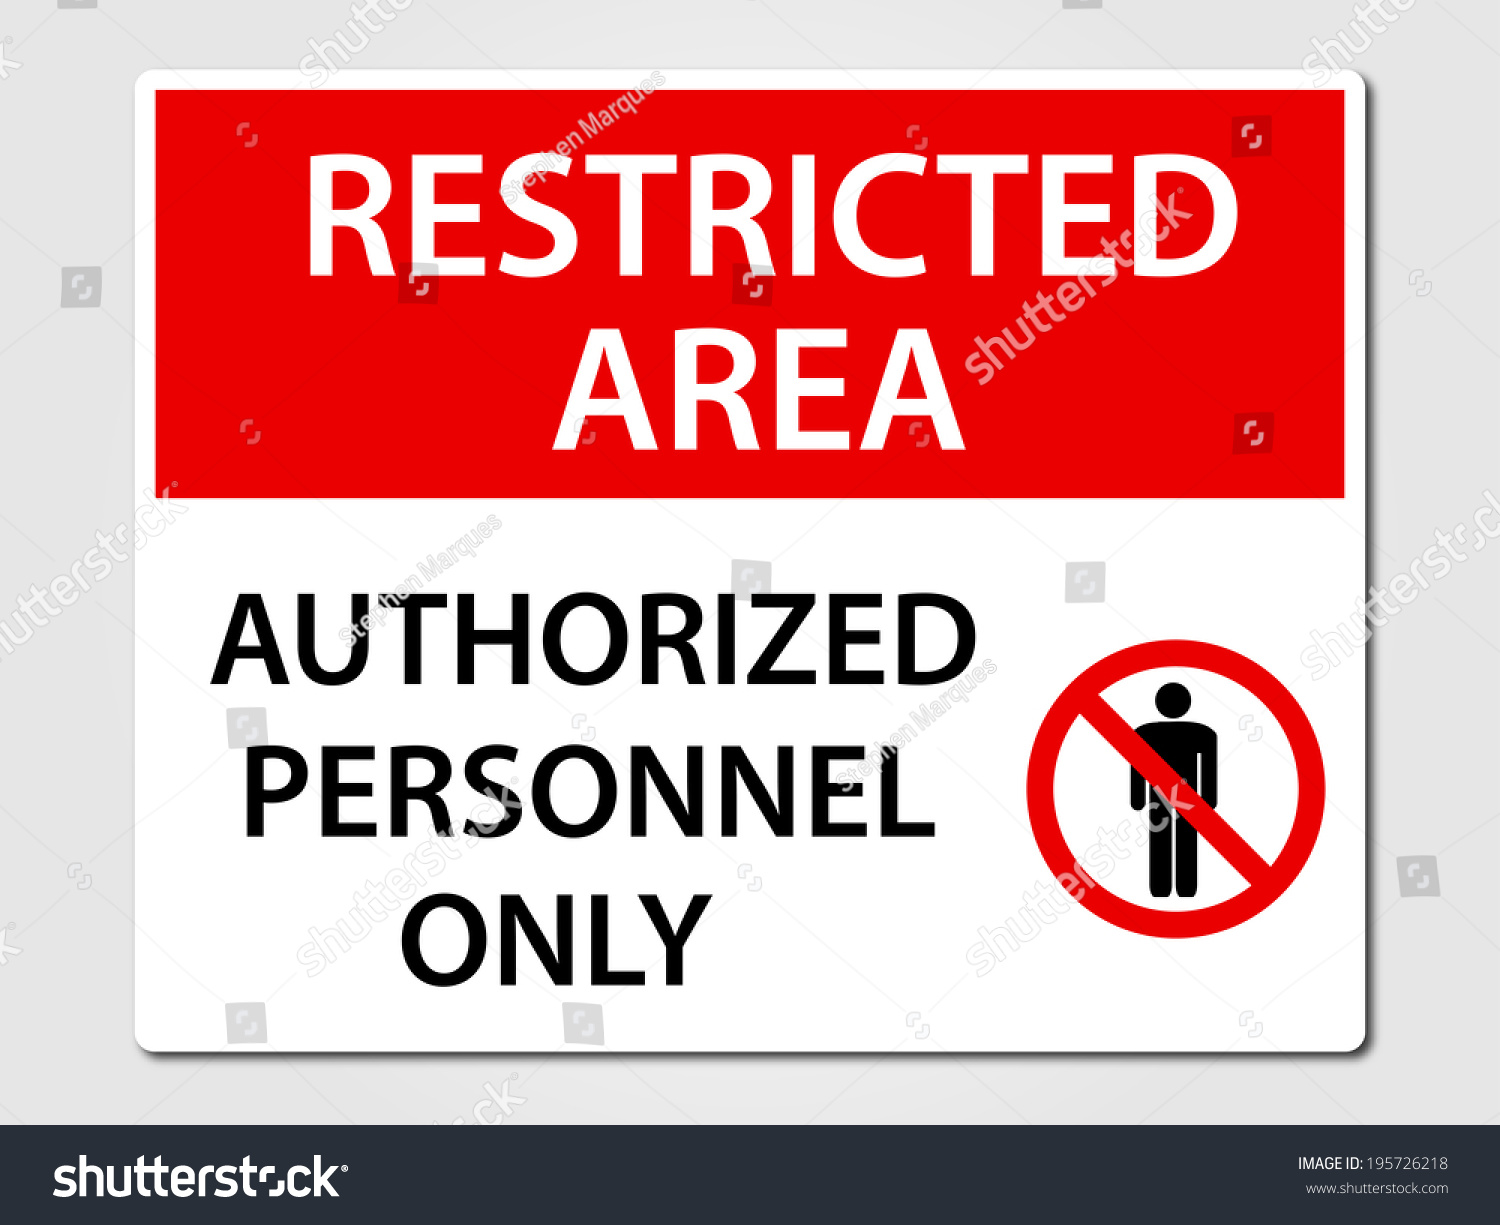 Authorized personnel only security sign stock vector for Zona 5 mobilia no club download